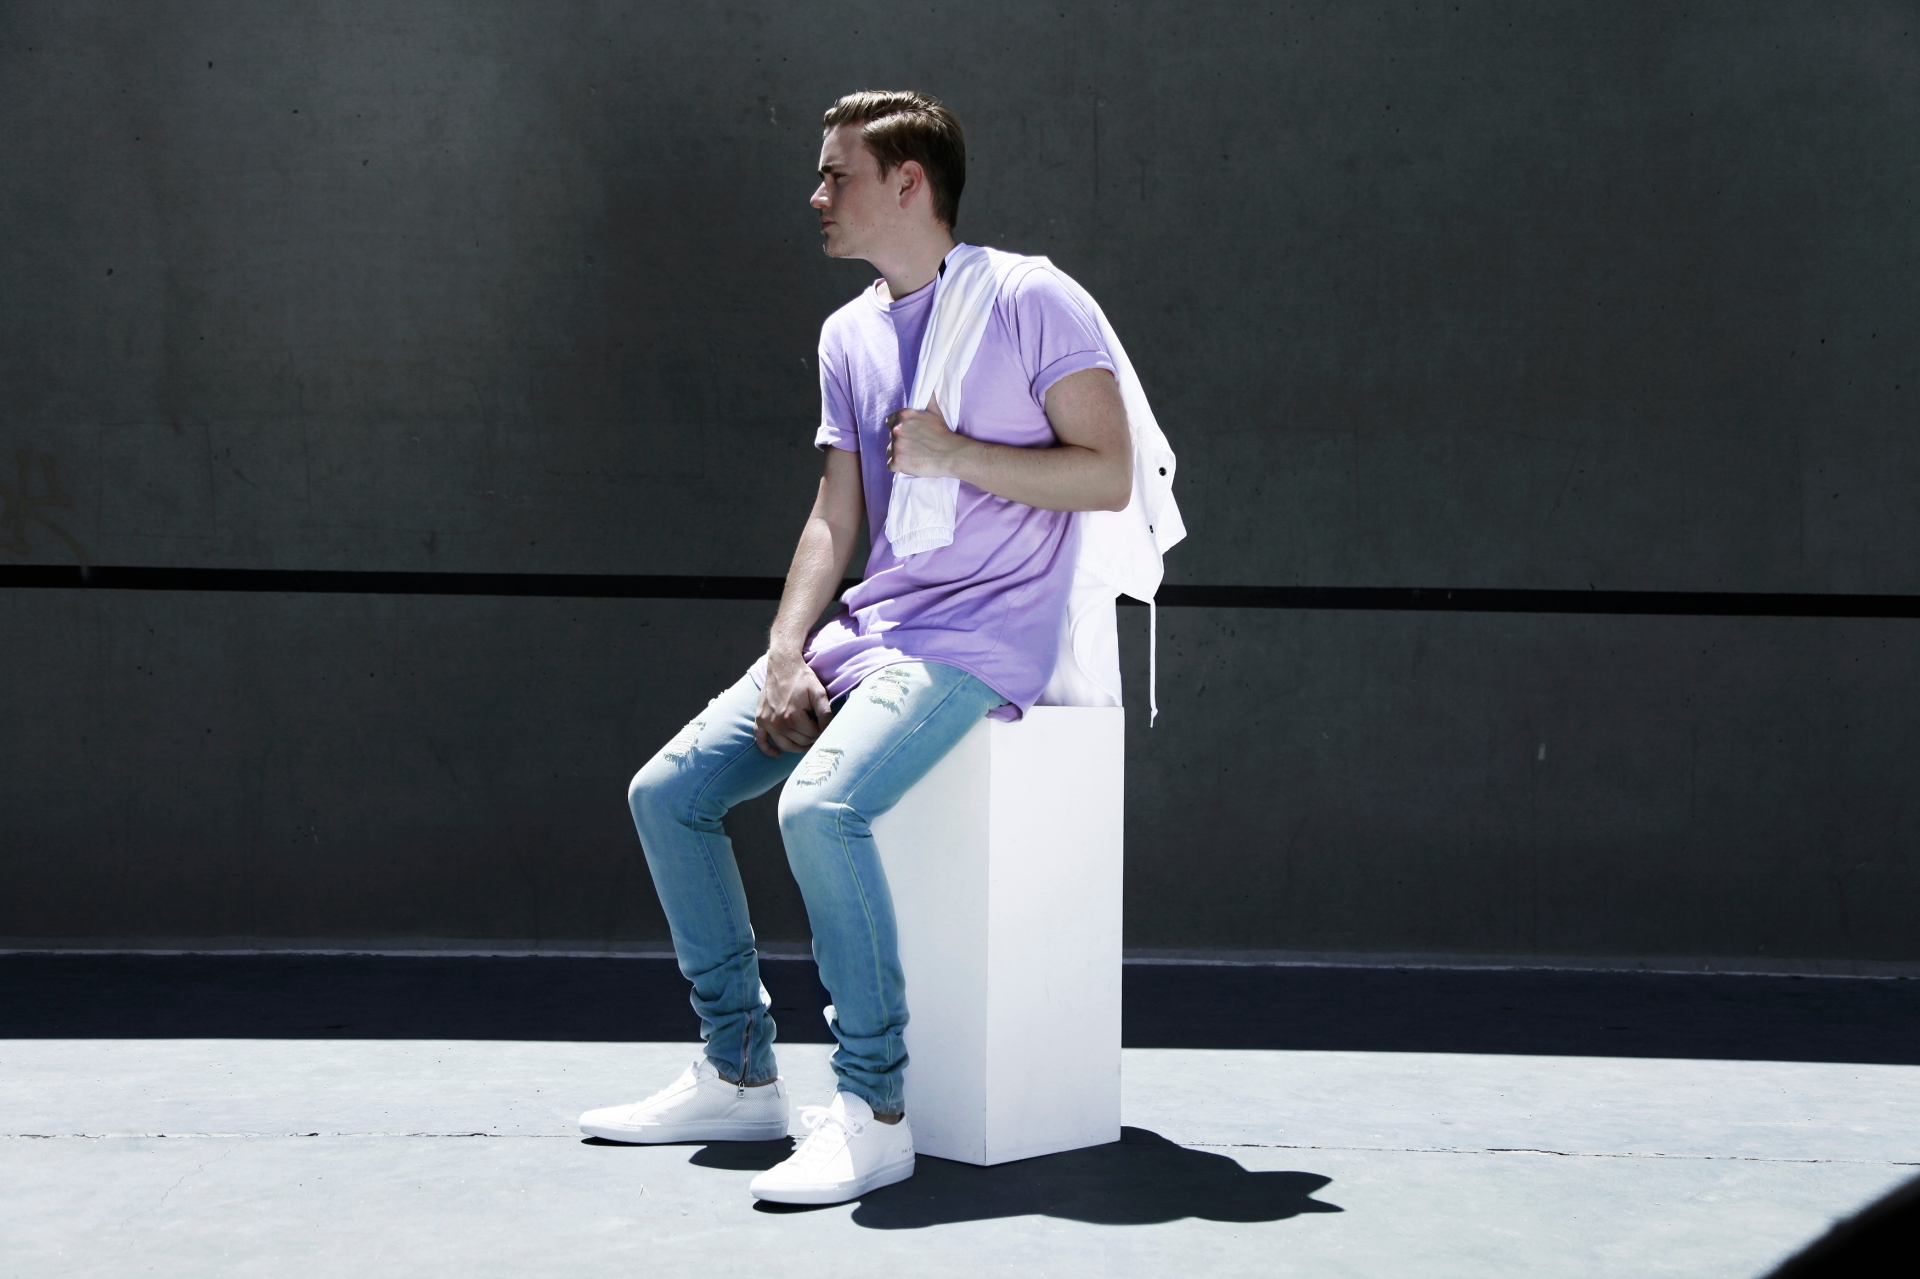 KNYEW Sets the Season Proper with Their Pastel E-Long Tees